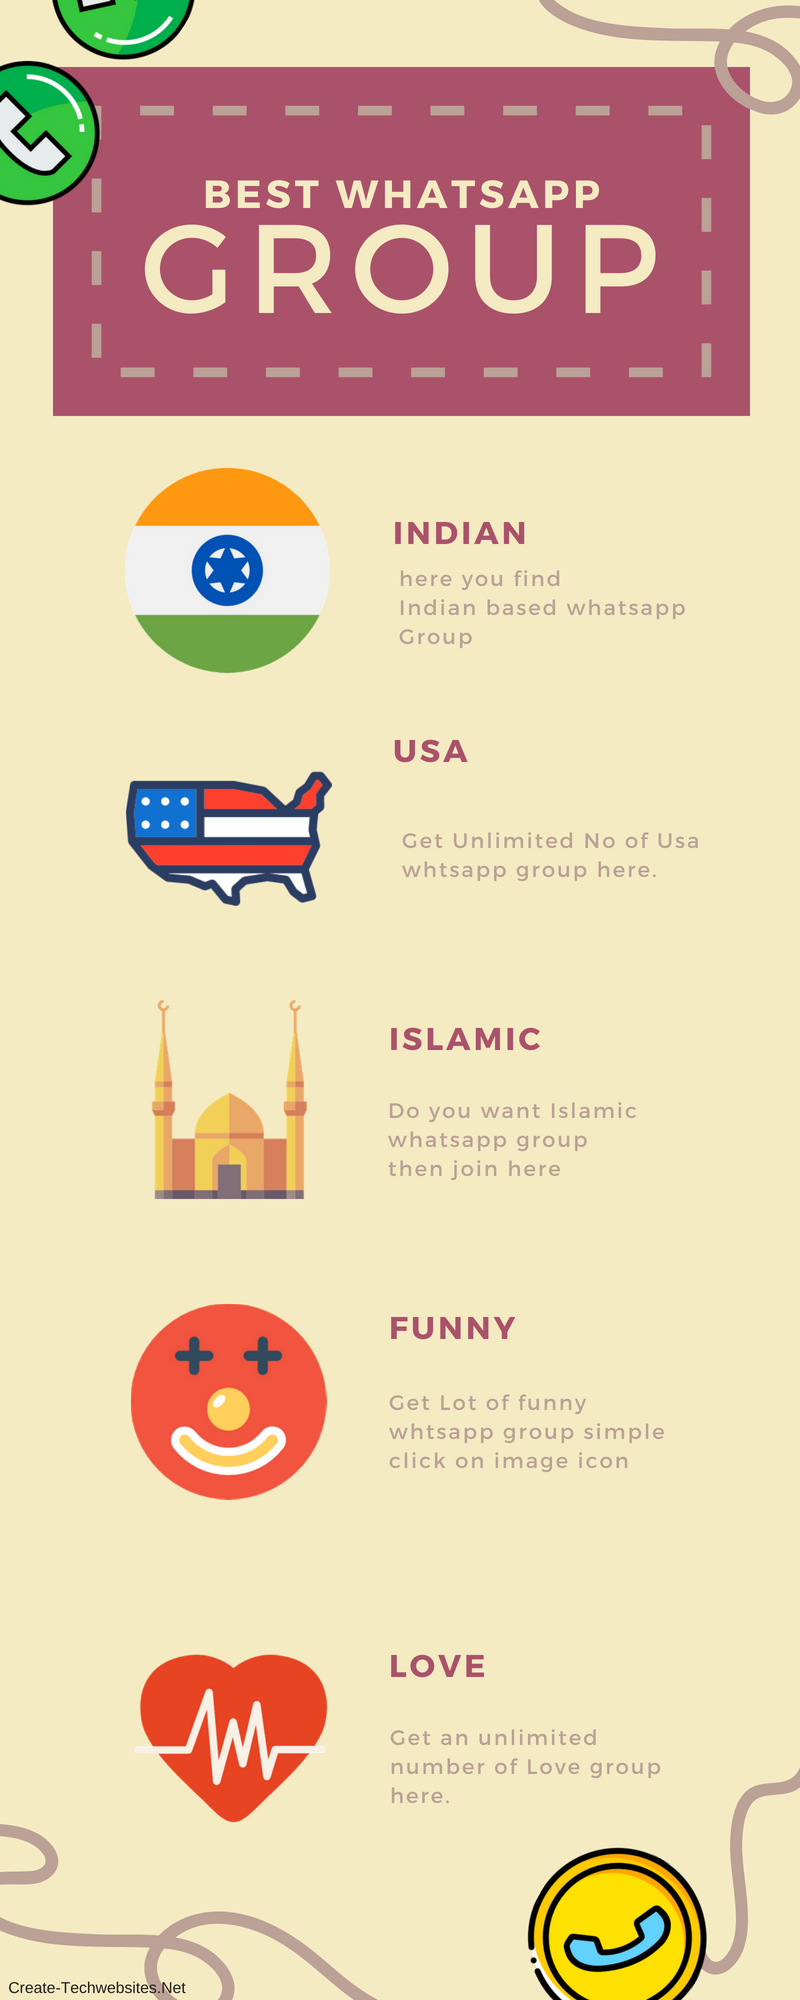 best whatsapp group link info-graphic